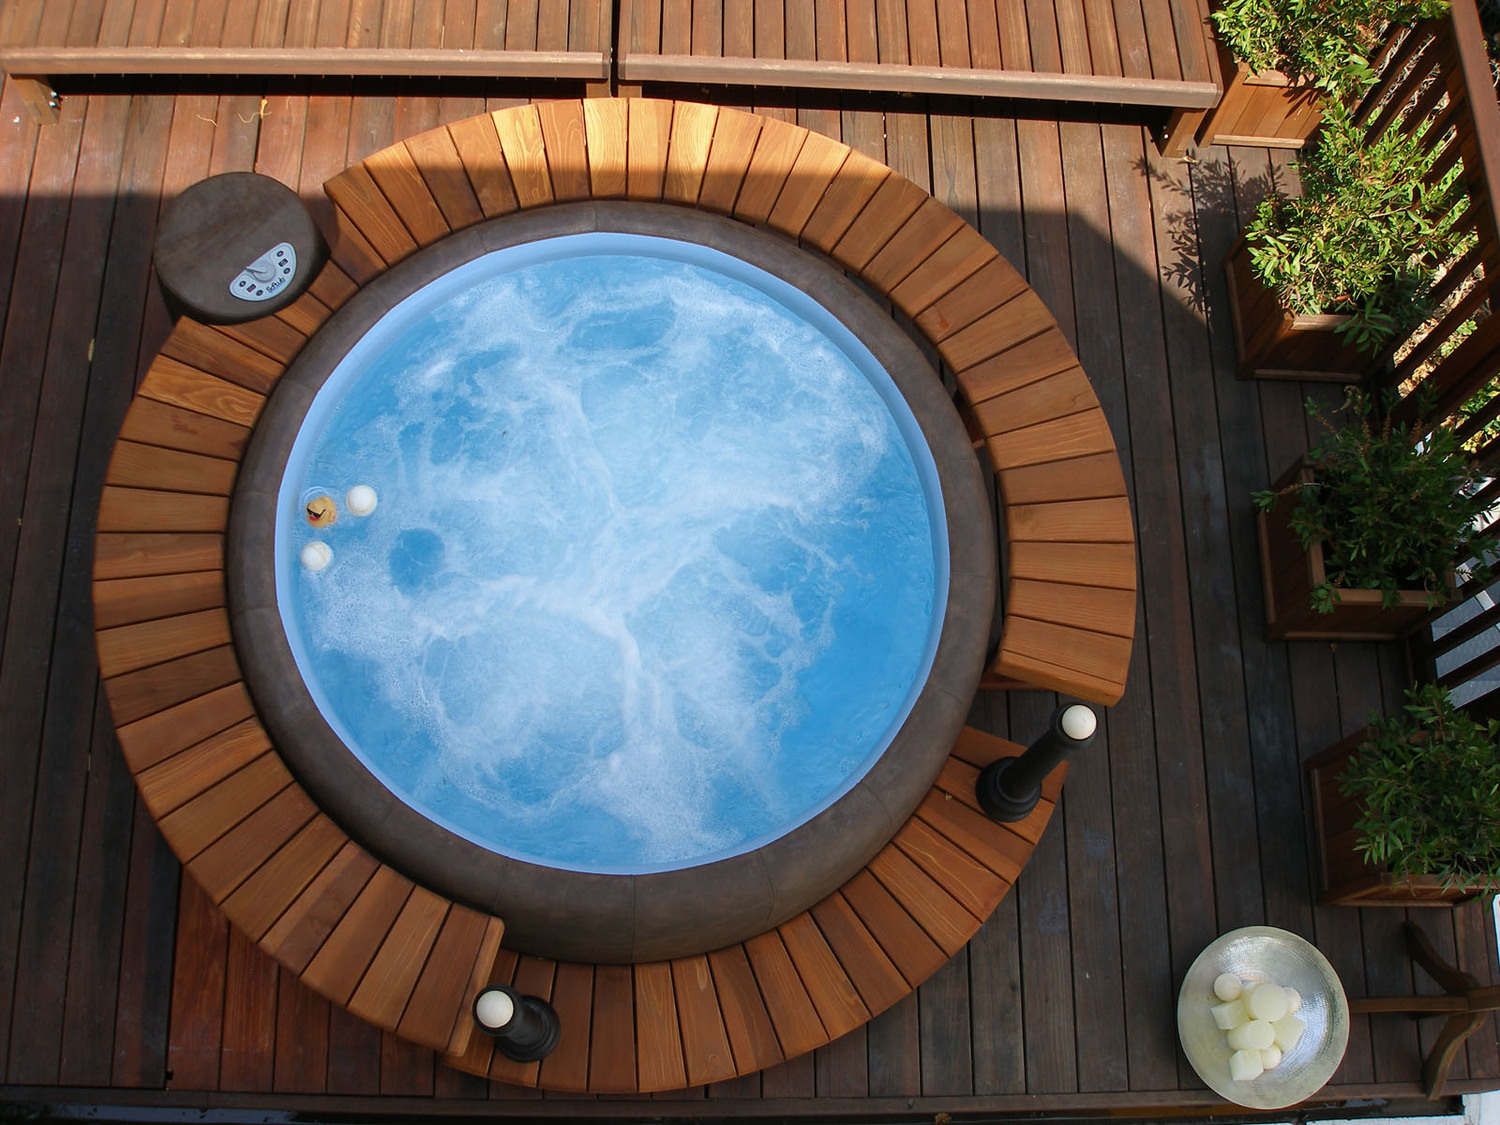 hot ground concept outdoor product tub soft person prod above circular softub